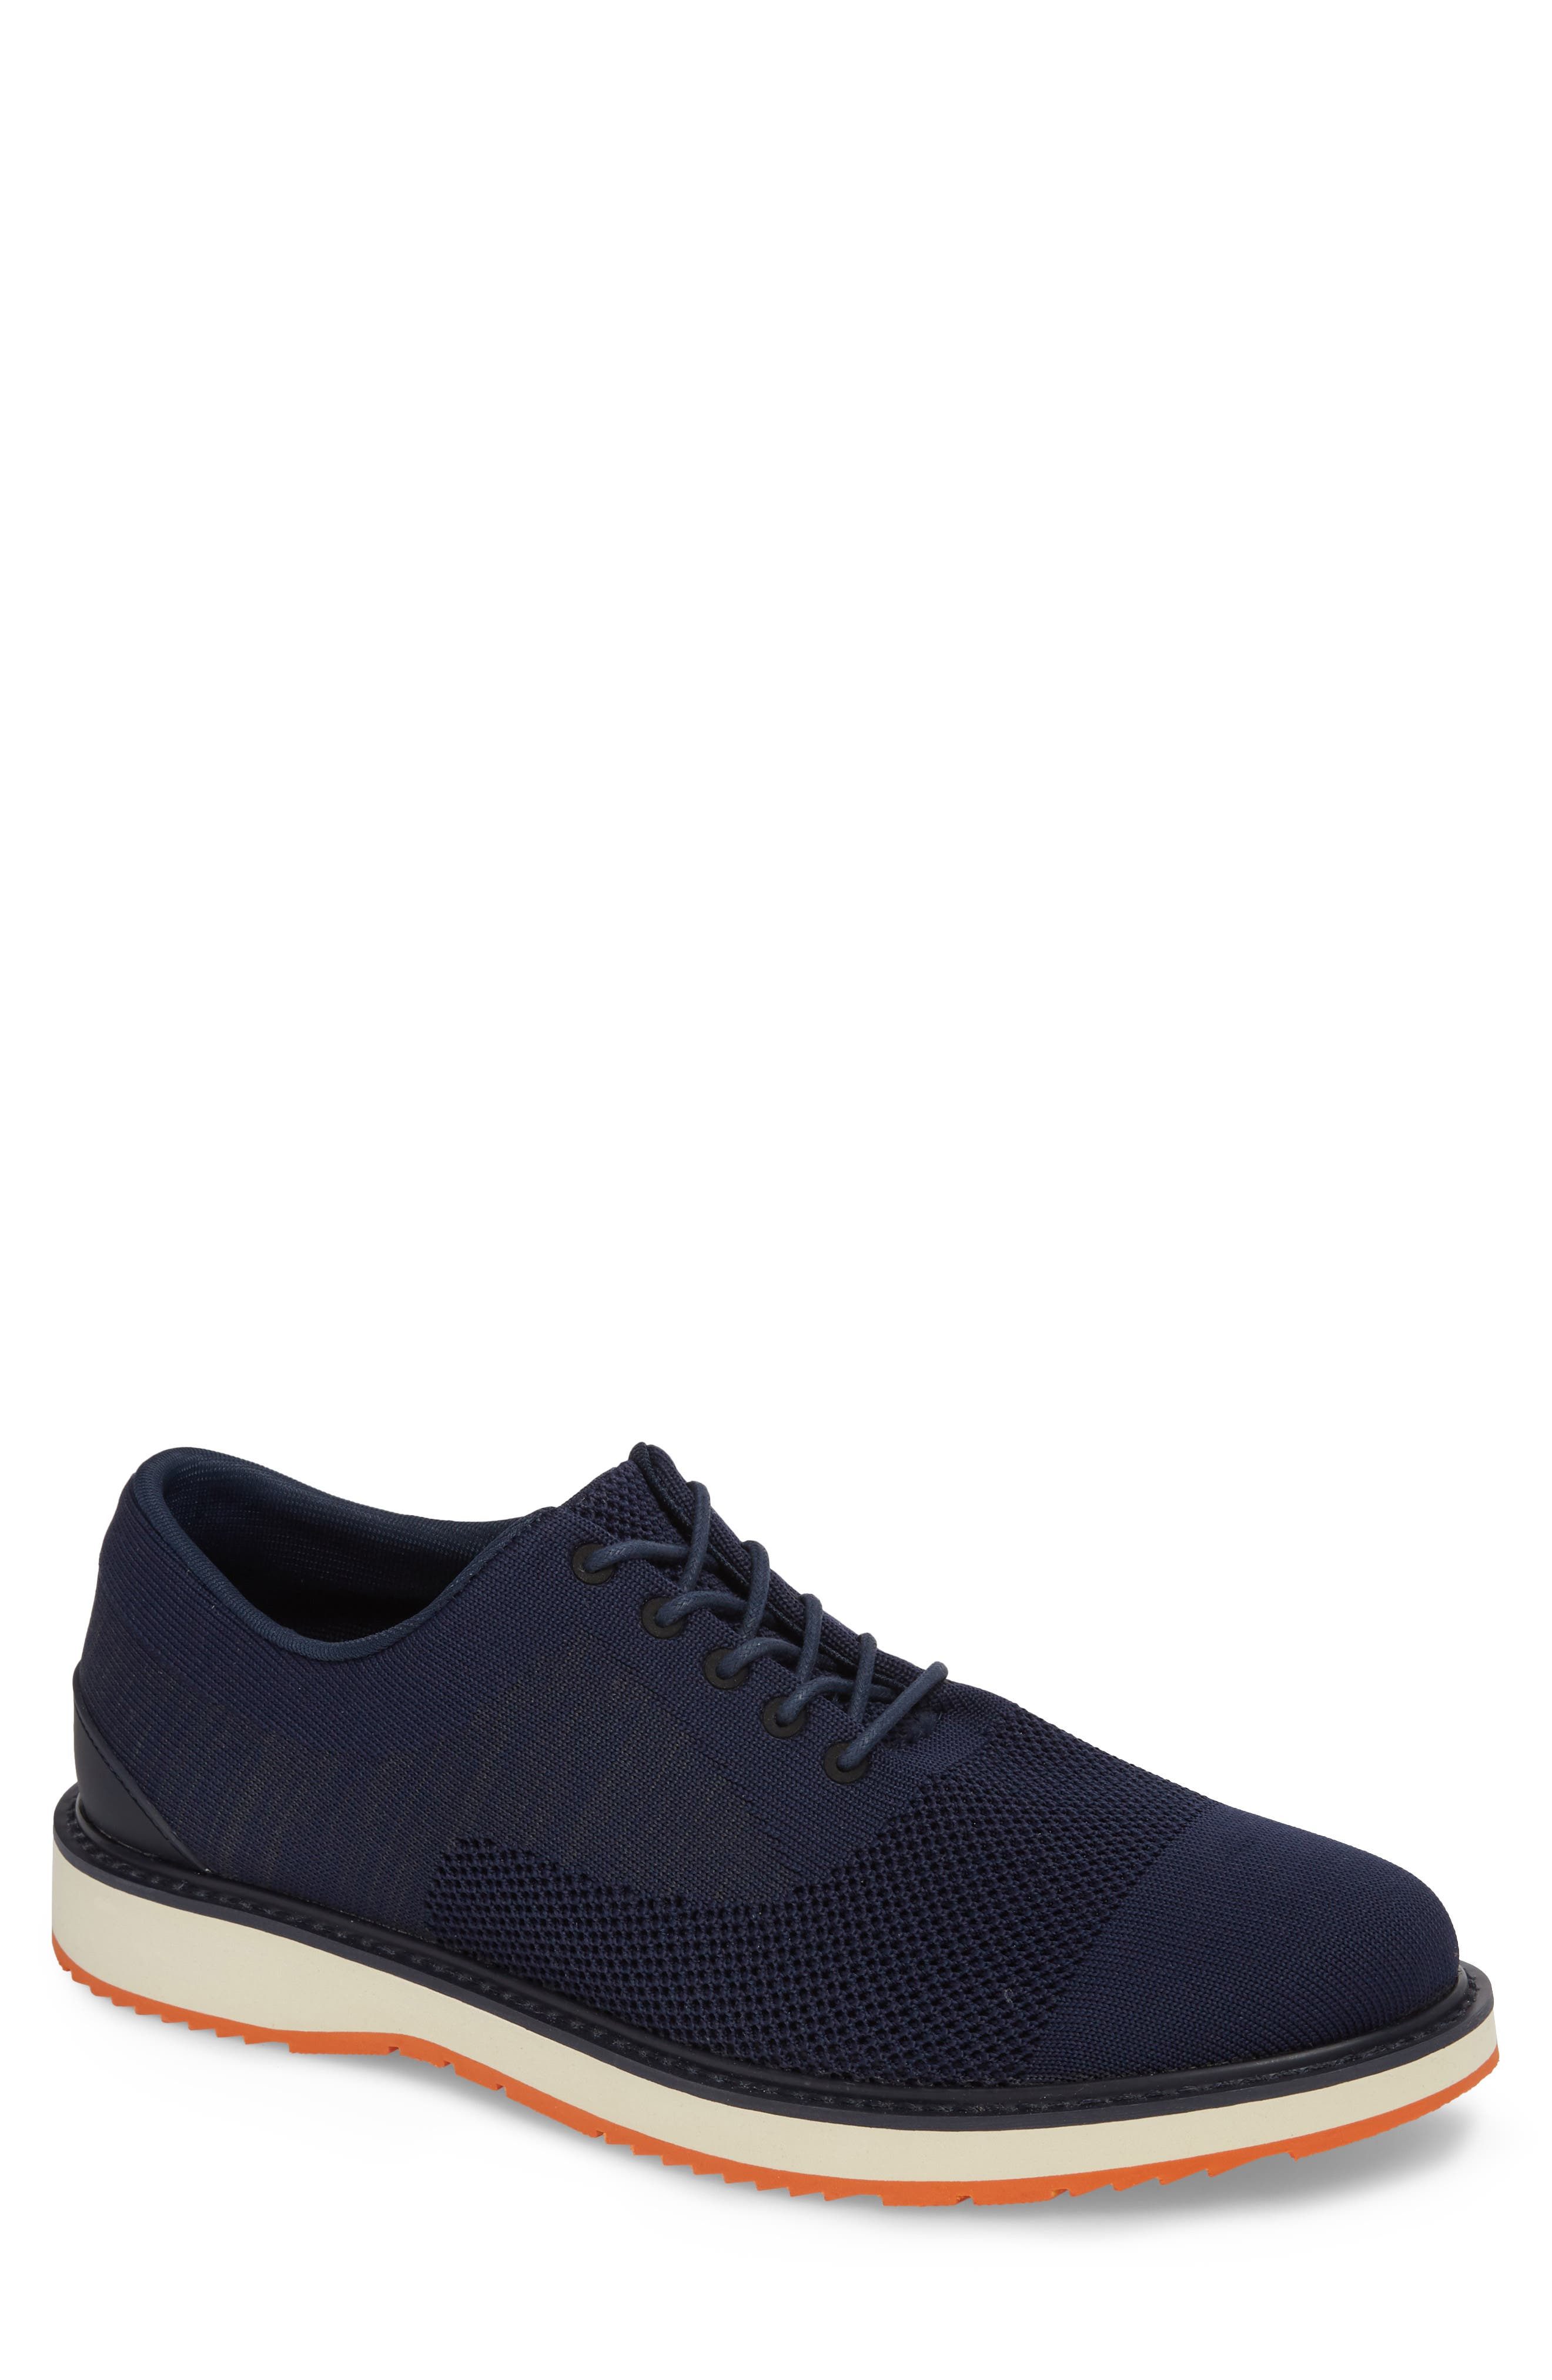 Swims Barry Knit Oxford (Men)